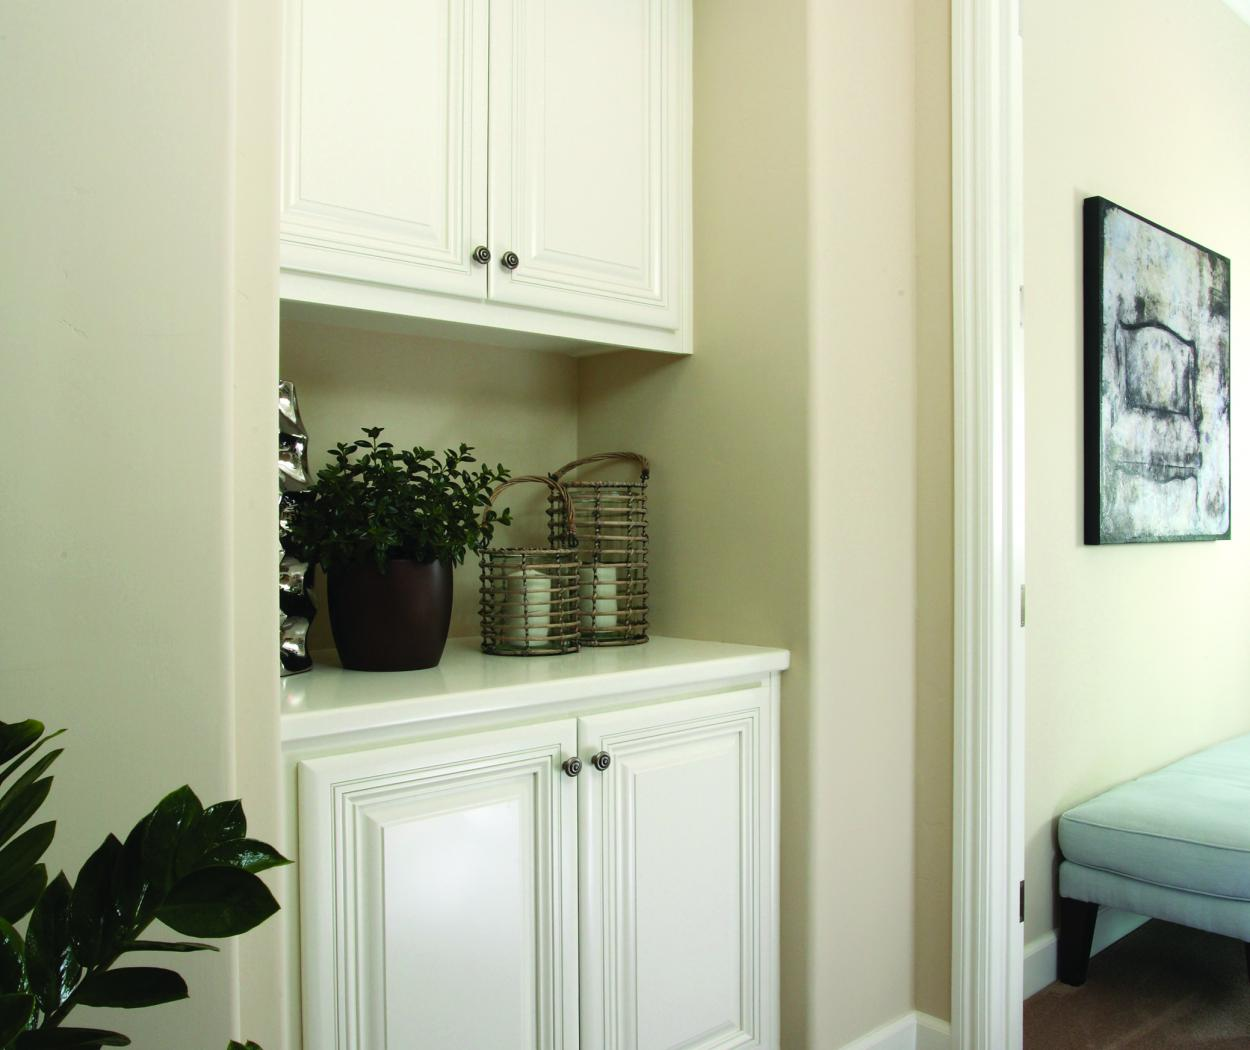 Traditional White Bedroom Built-In with Decorative Knobs